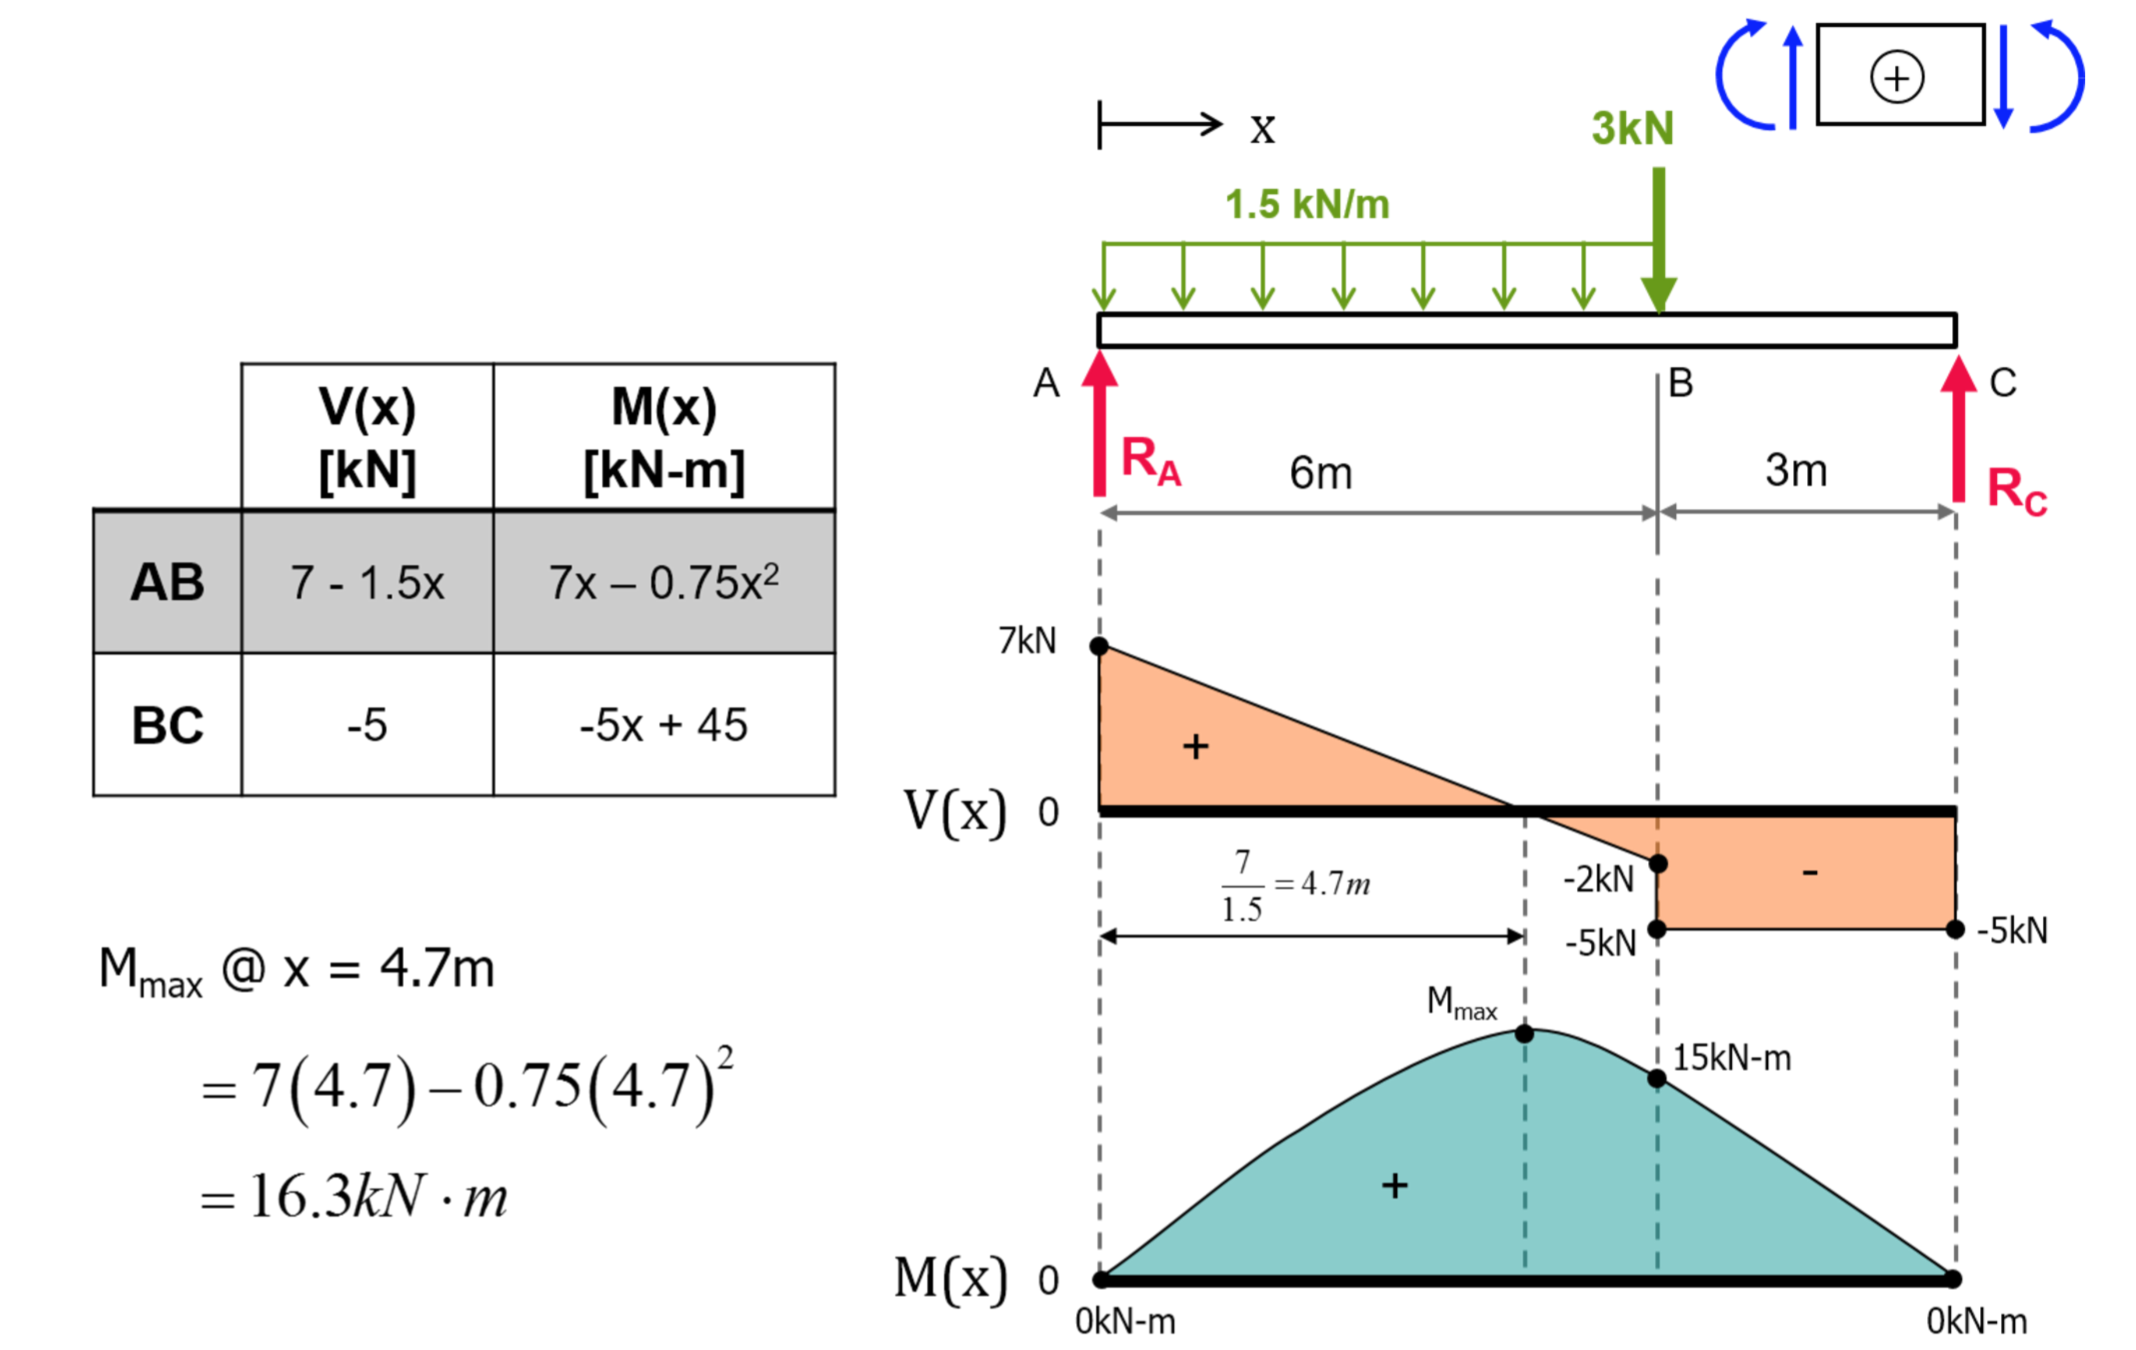 exercise shear force bending moment diagrams solution tu rh ocw tudelft nl shear moment diagram tool shear moment diagram example